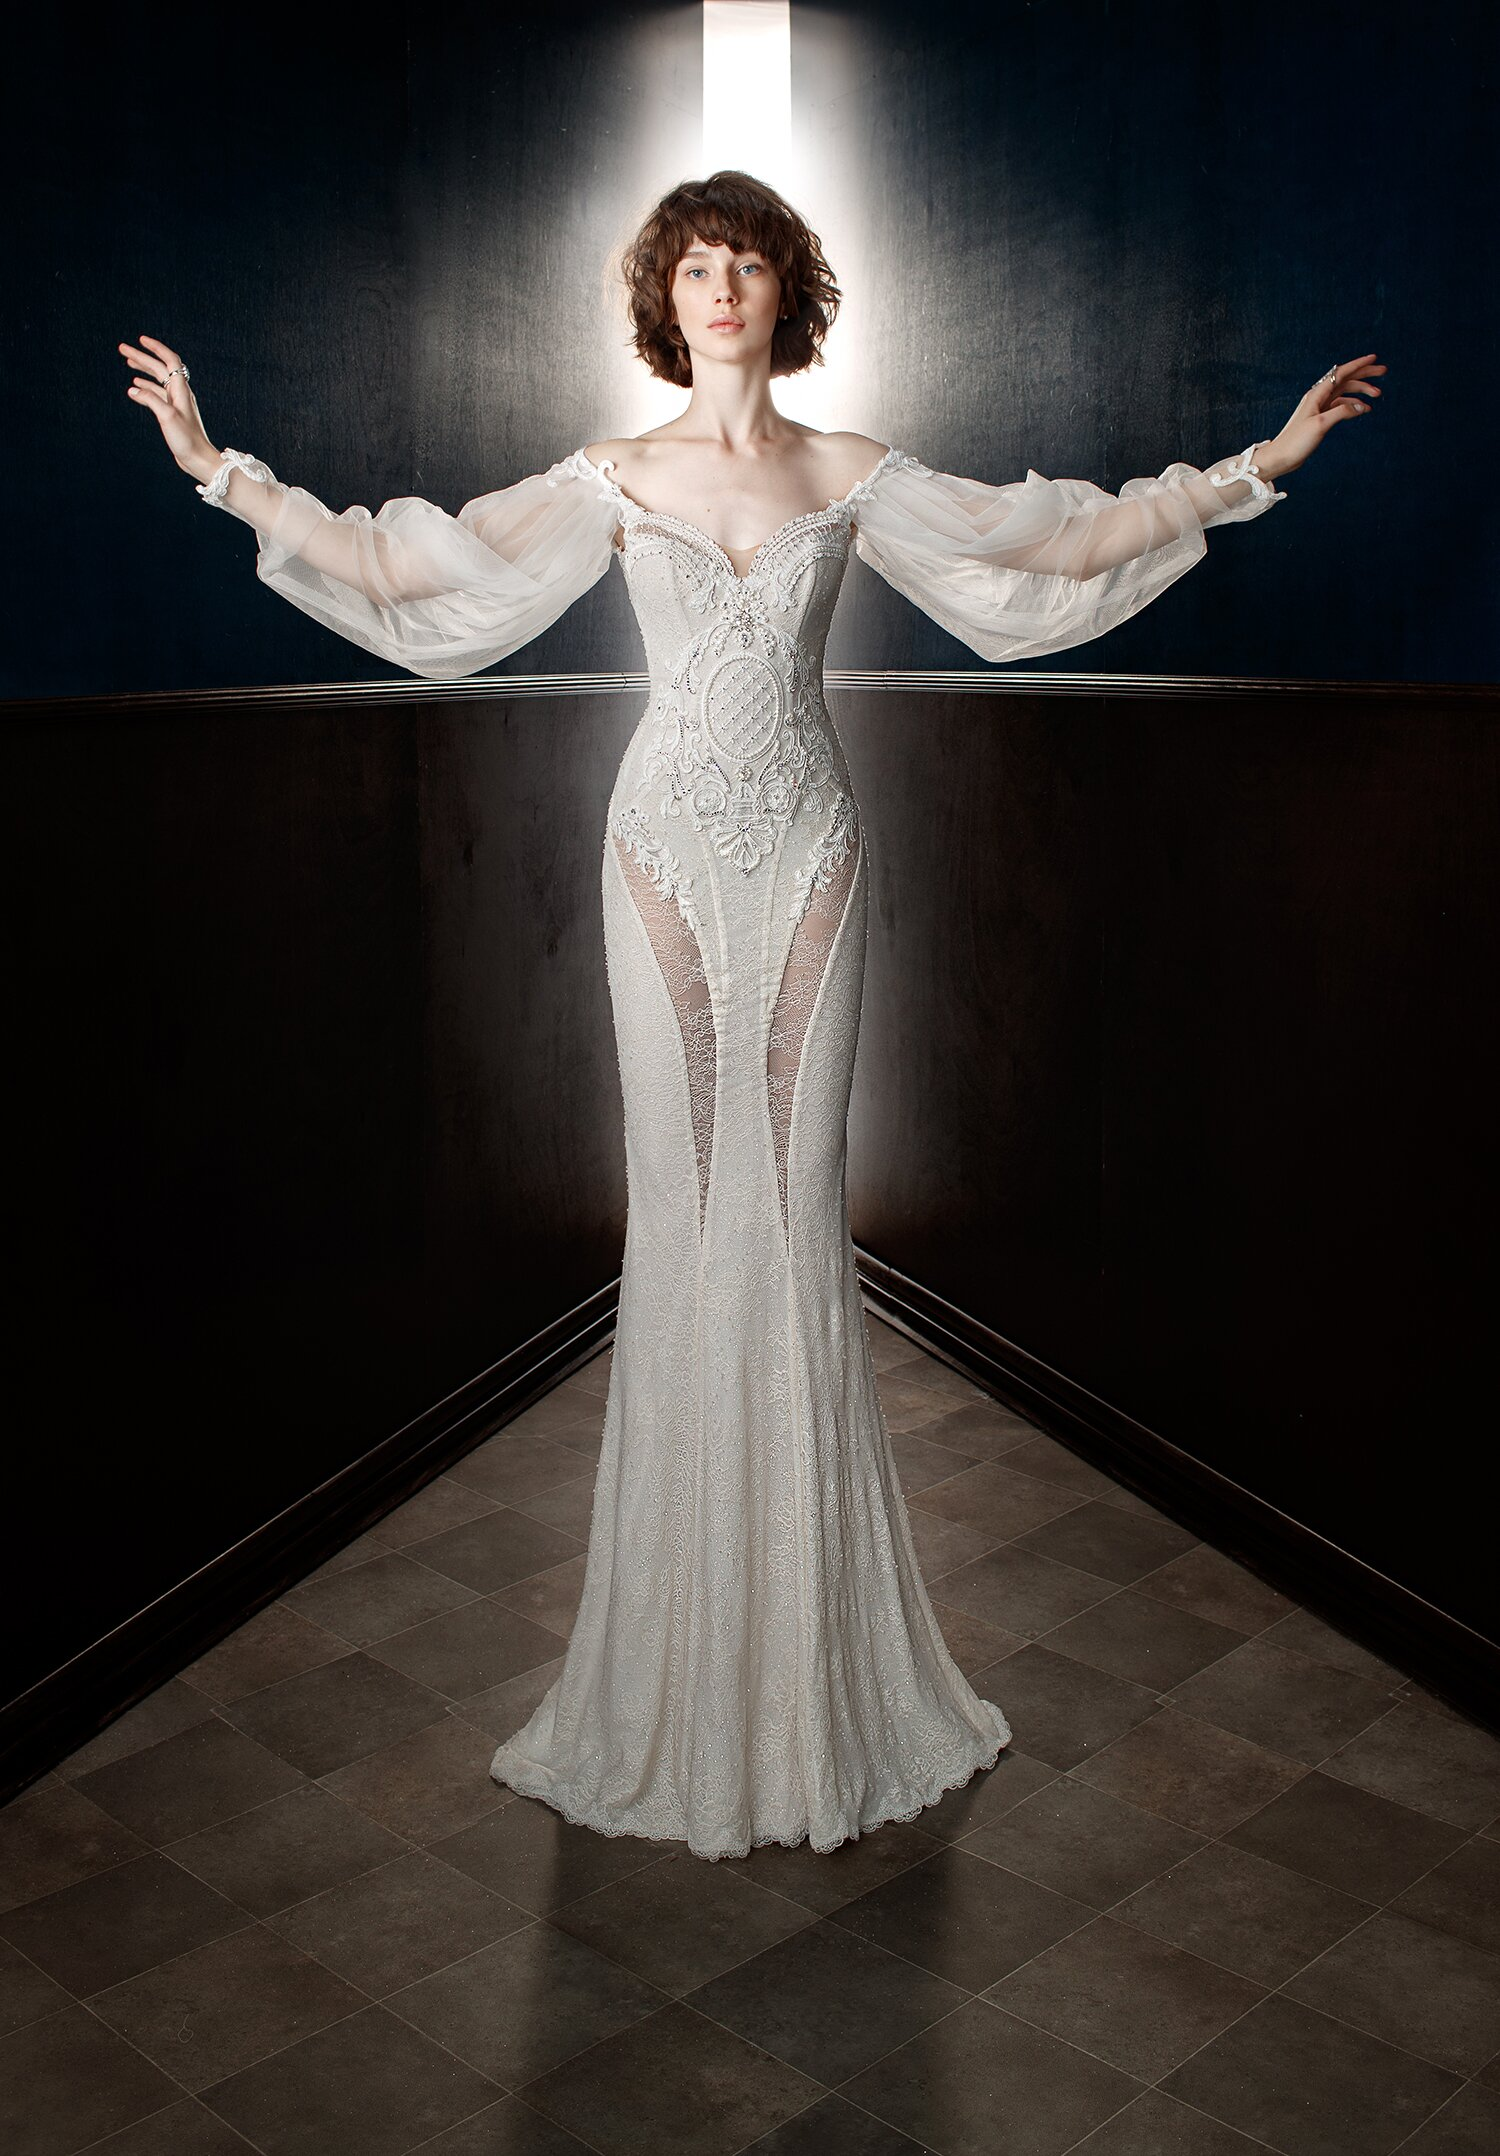 Get A Closer Look At The Wedding Dress Beyonce Wore For Her Vow